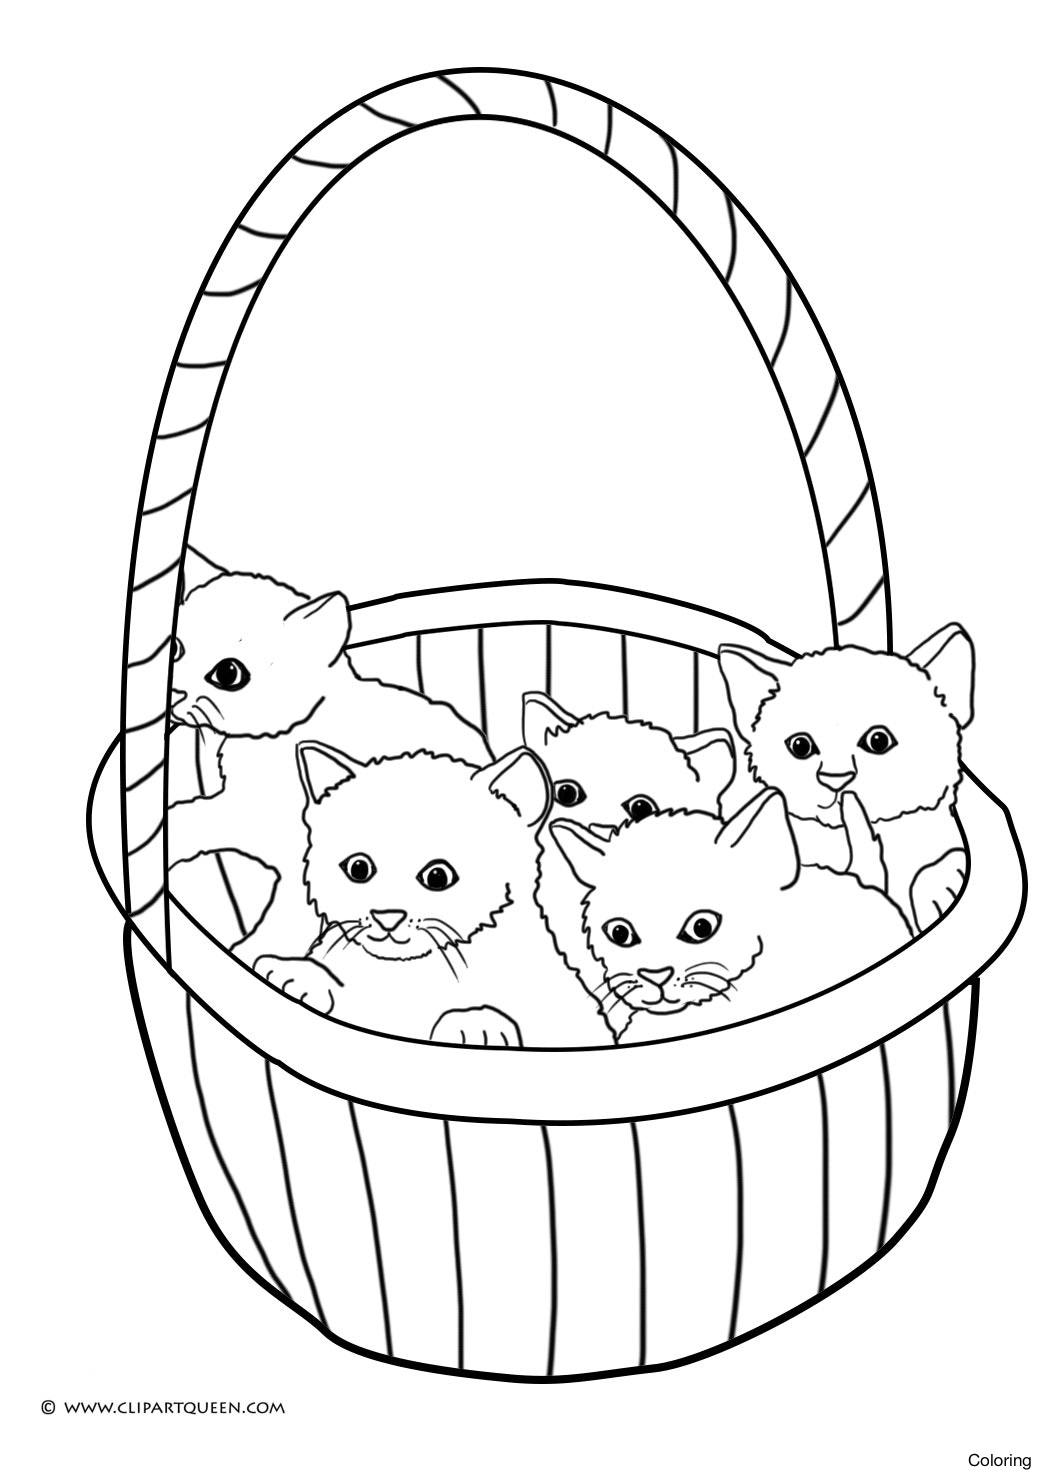 1042x1476 Inspiring Sleeping Cat Coloring Page Of Cute Kitten Pics For Ideas